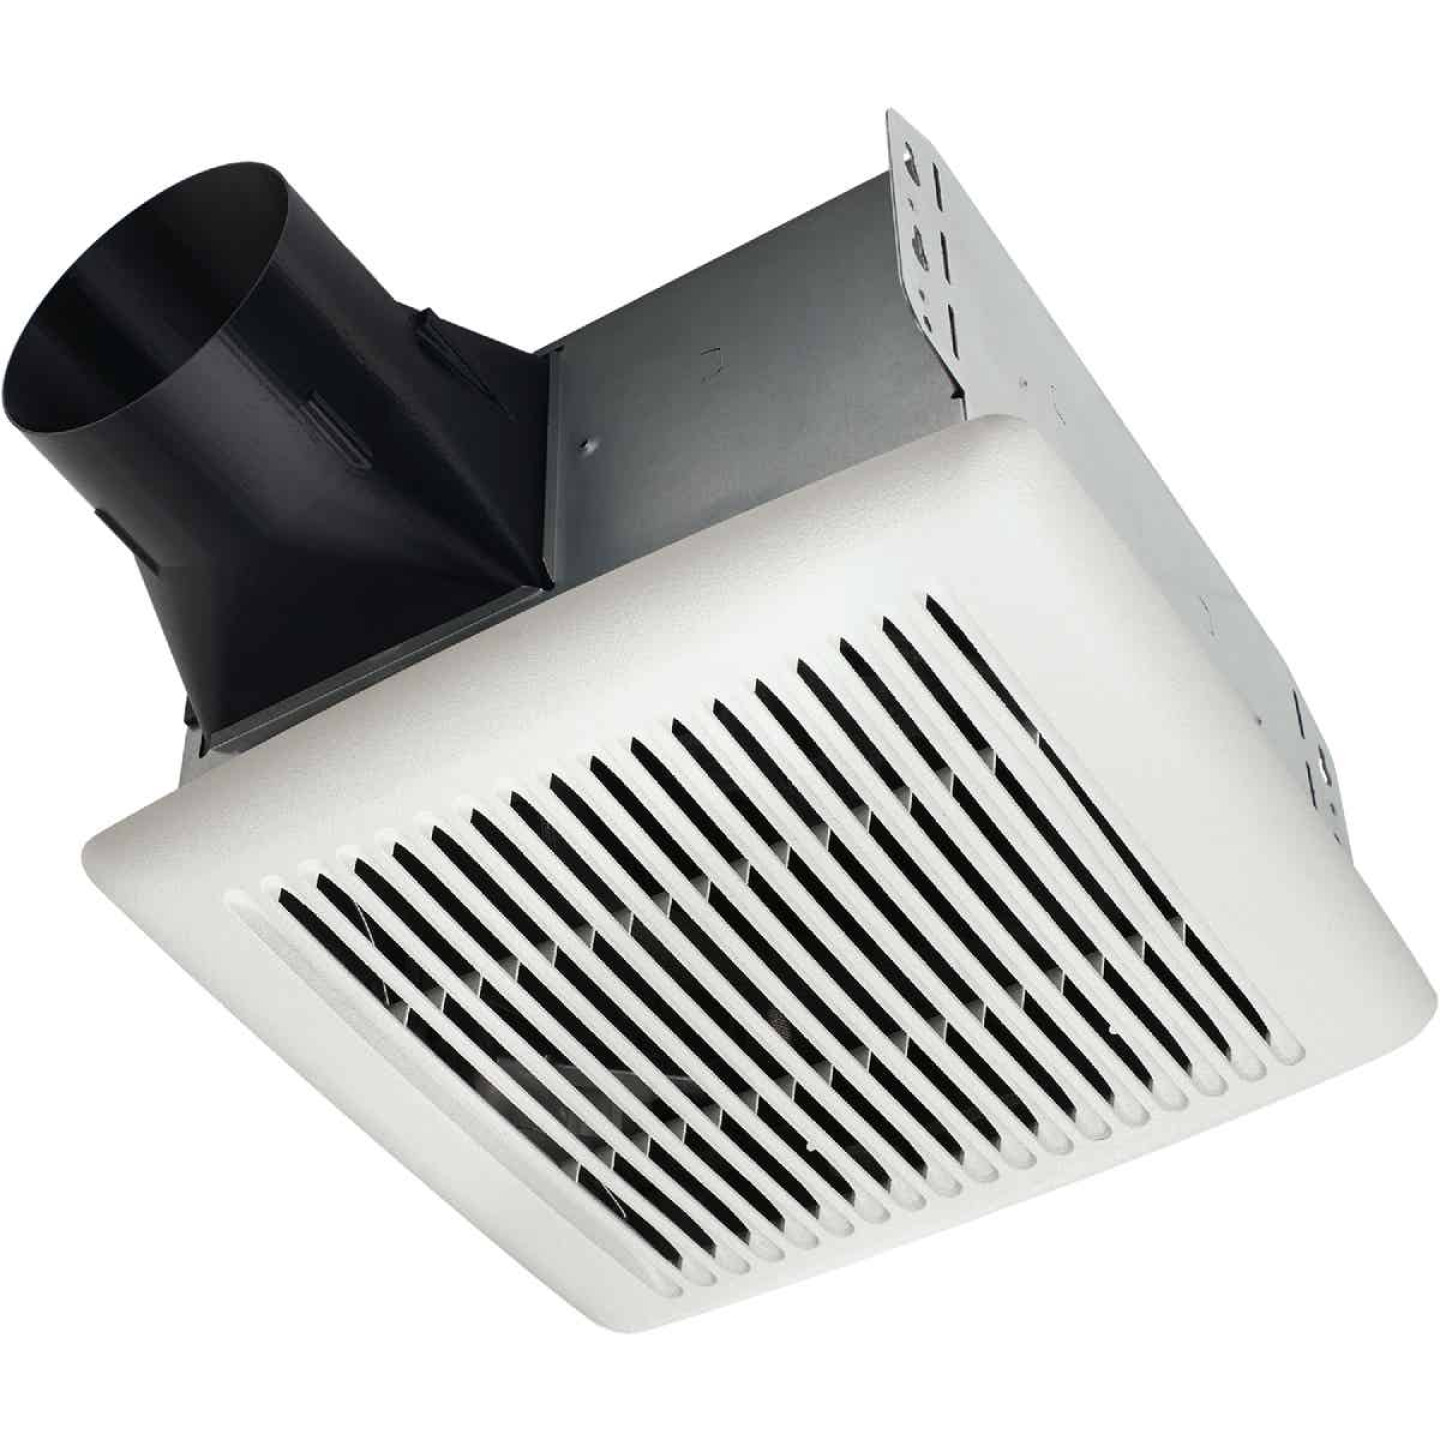 Broan 80 CFM 2.0 Sones 120V Bath Exhaust Fan Image 1